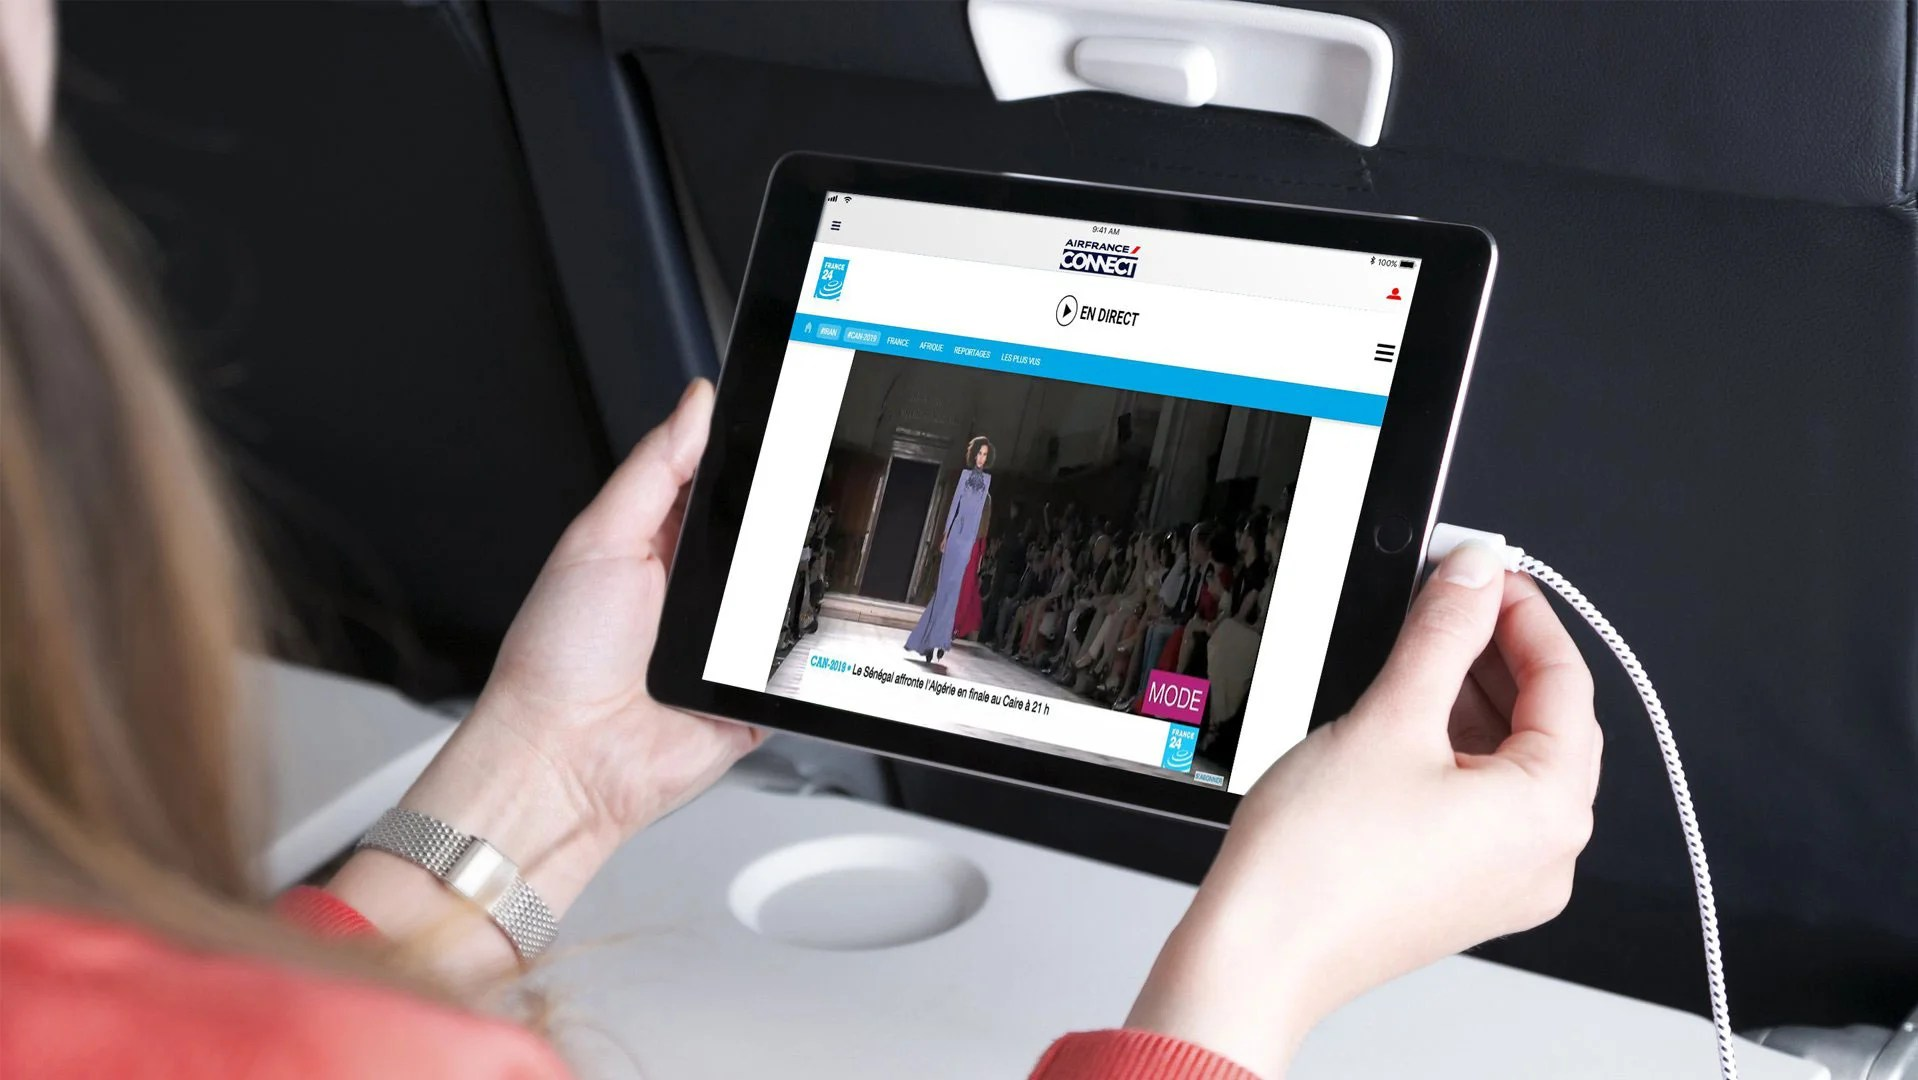 air-france-live-tv-connect-2019